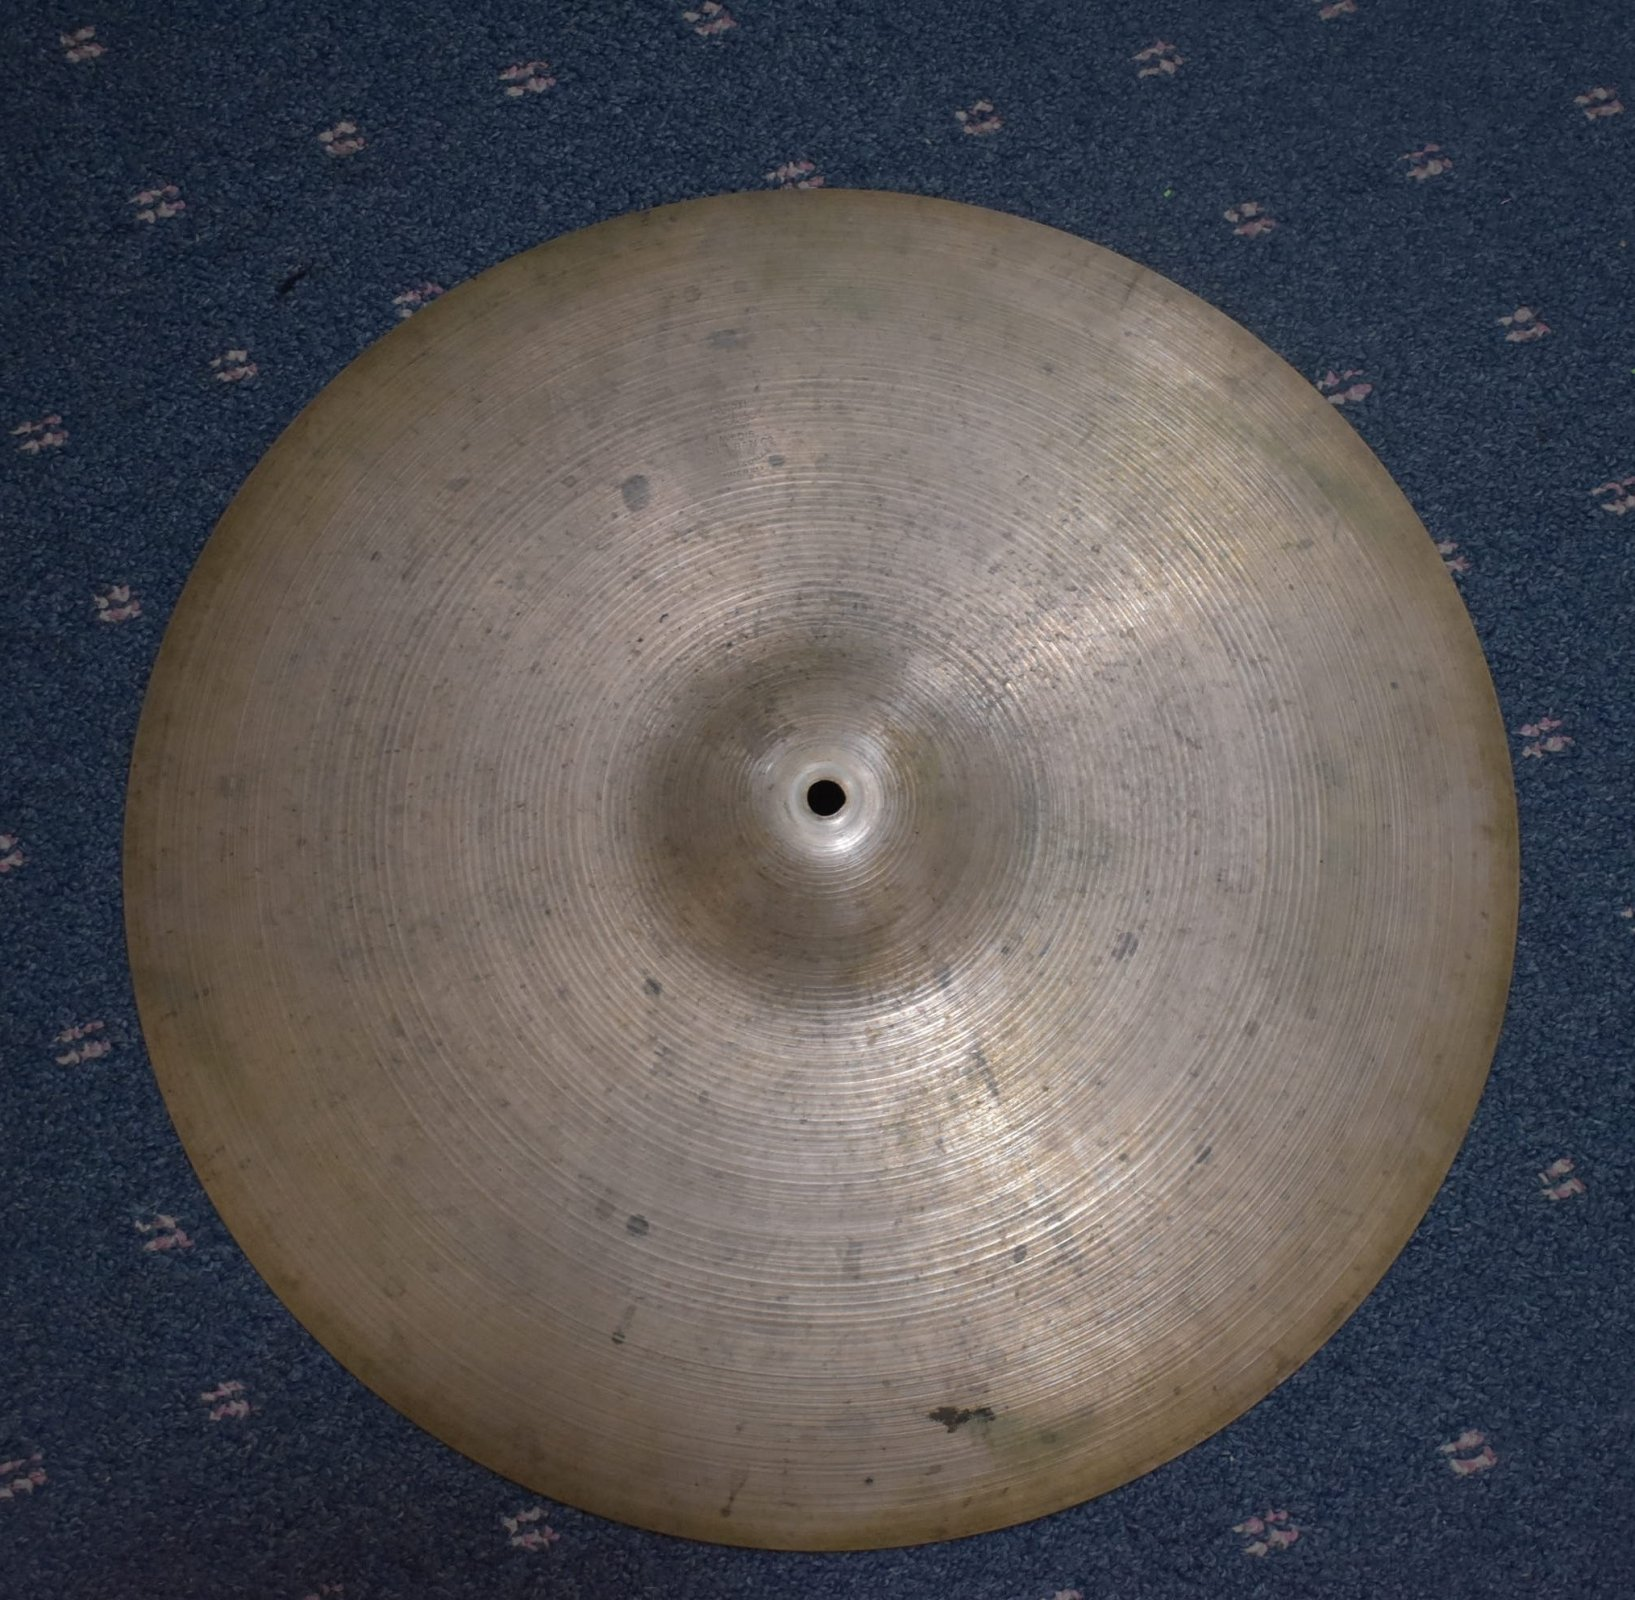 1970s Zildjian 20 Ride